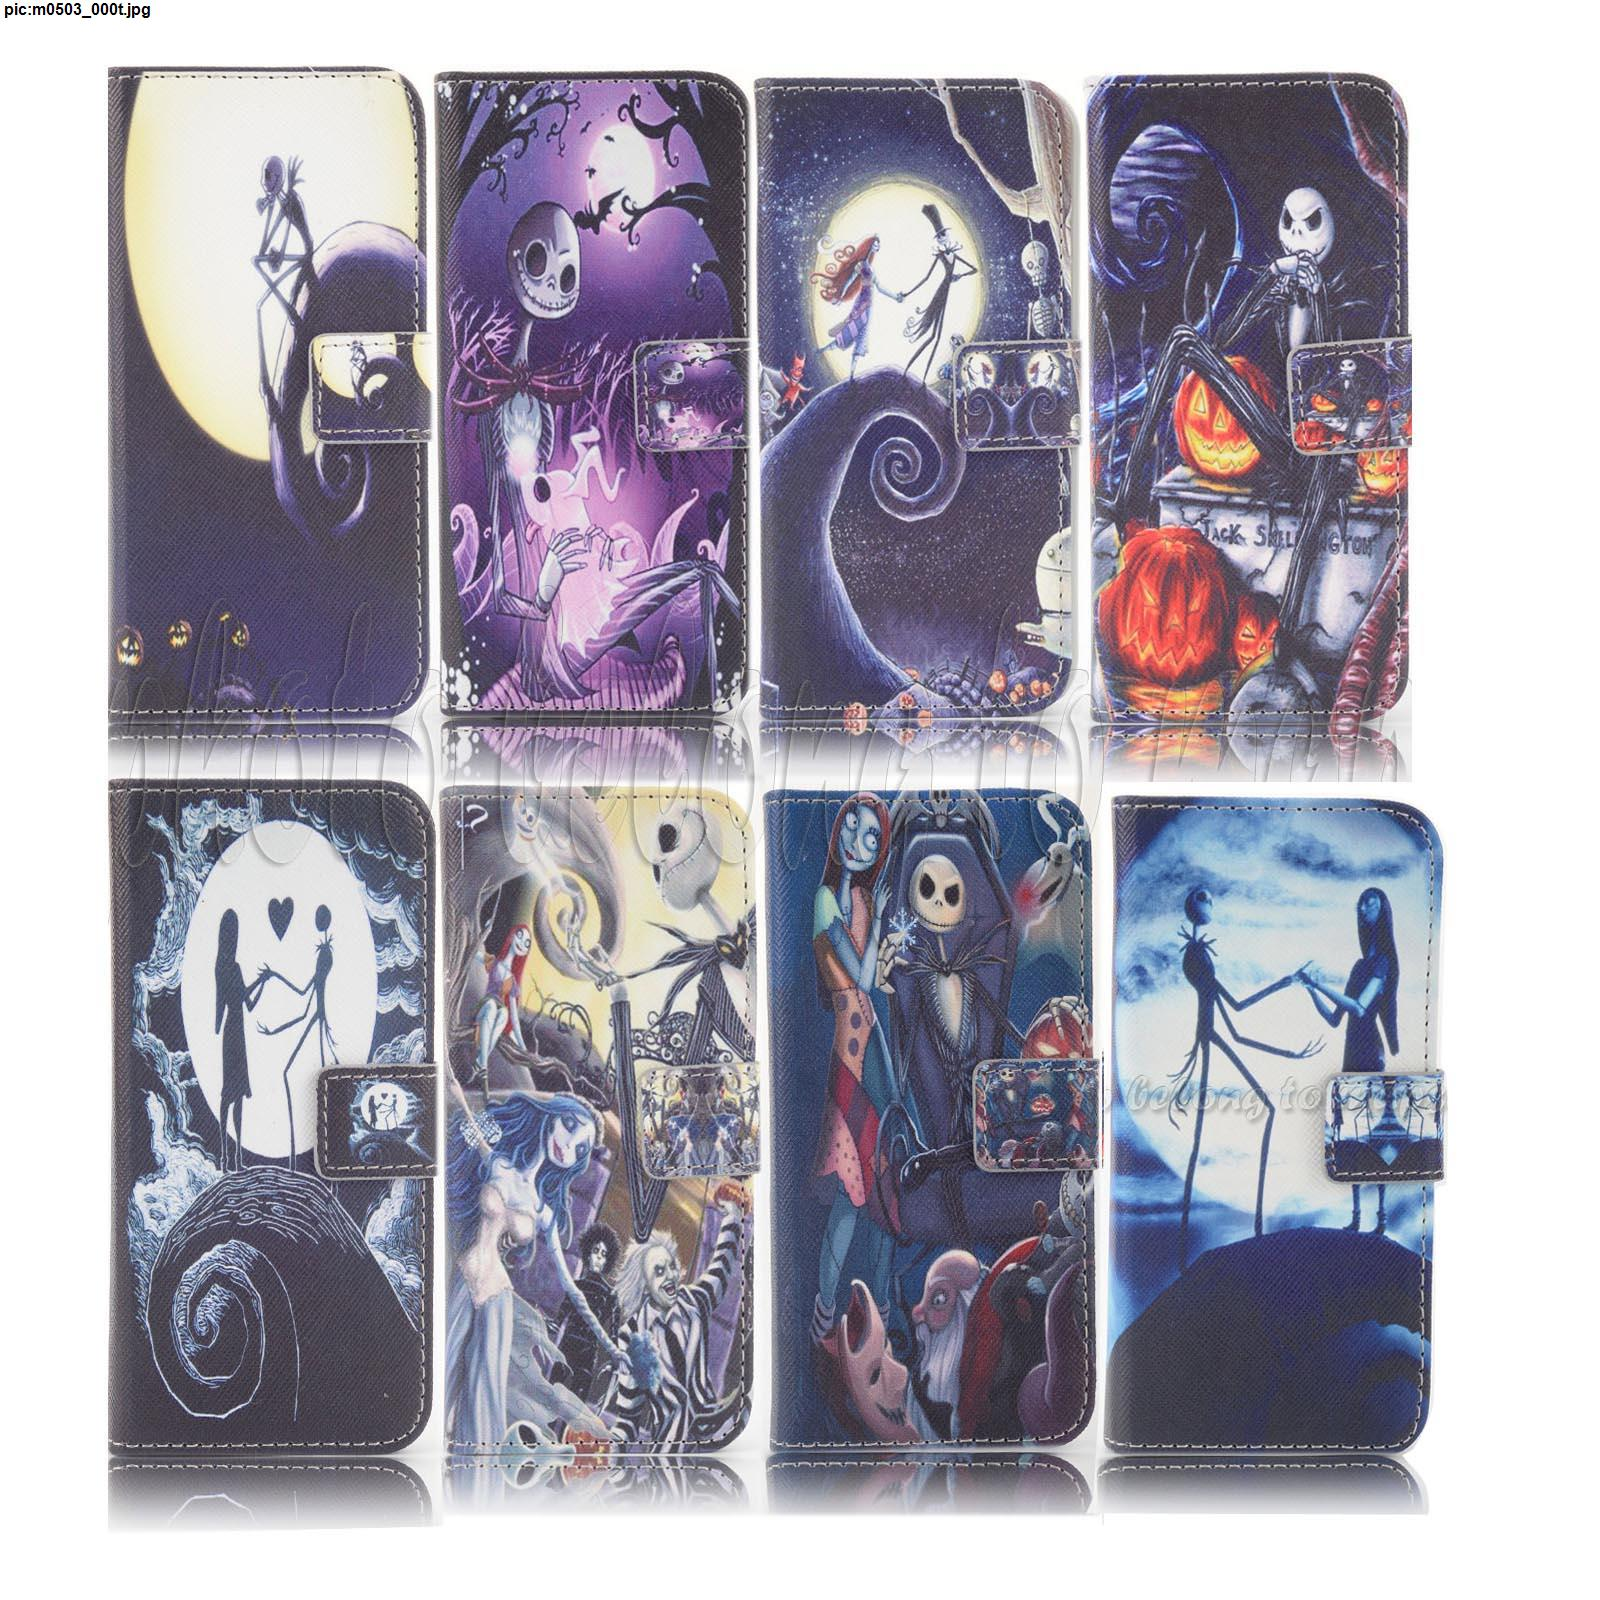 The Nightmare Before Christmas Wallet Leather case for LG G4 Q0503 ...